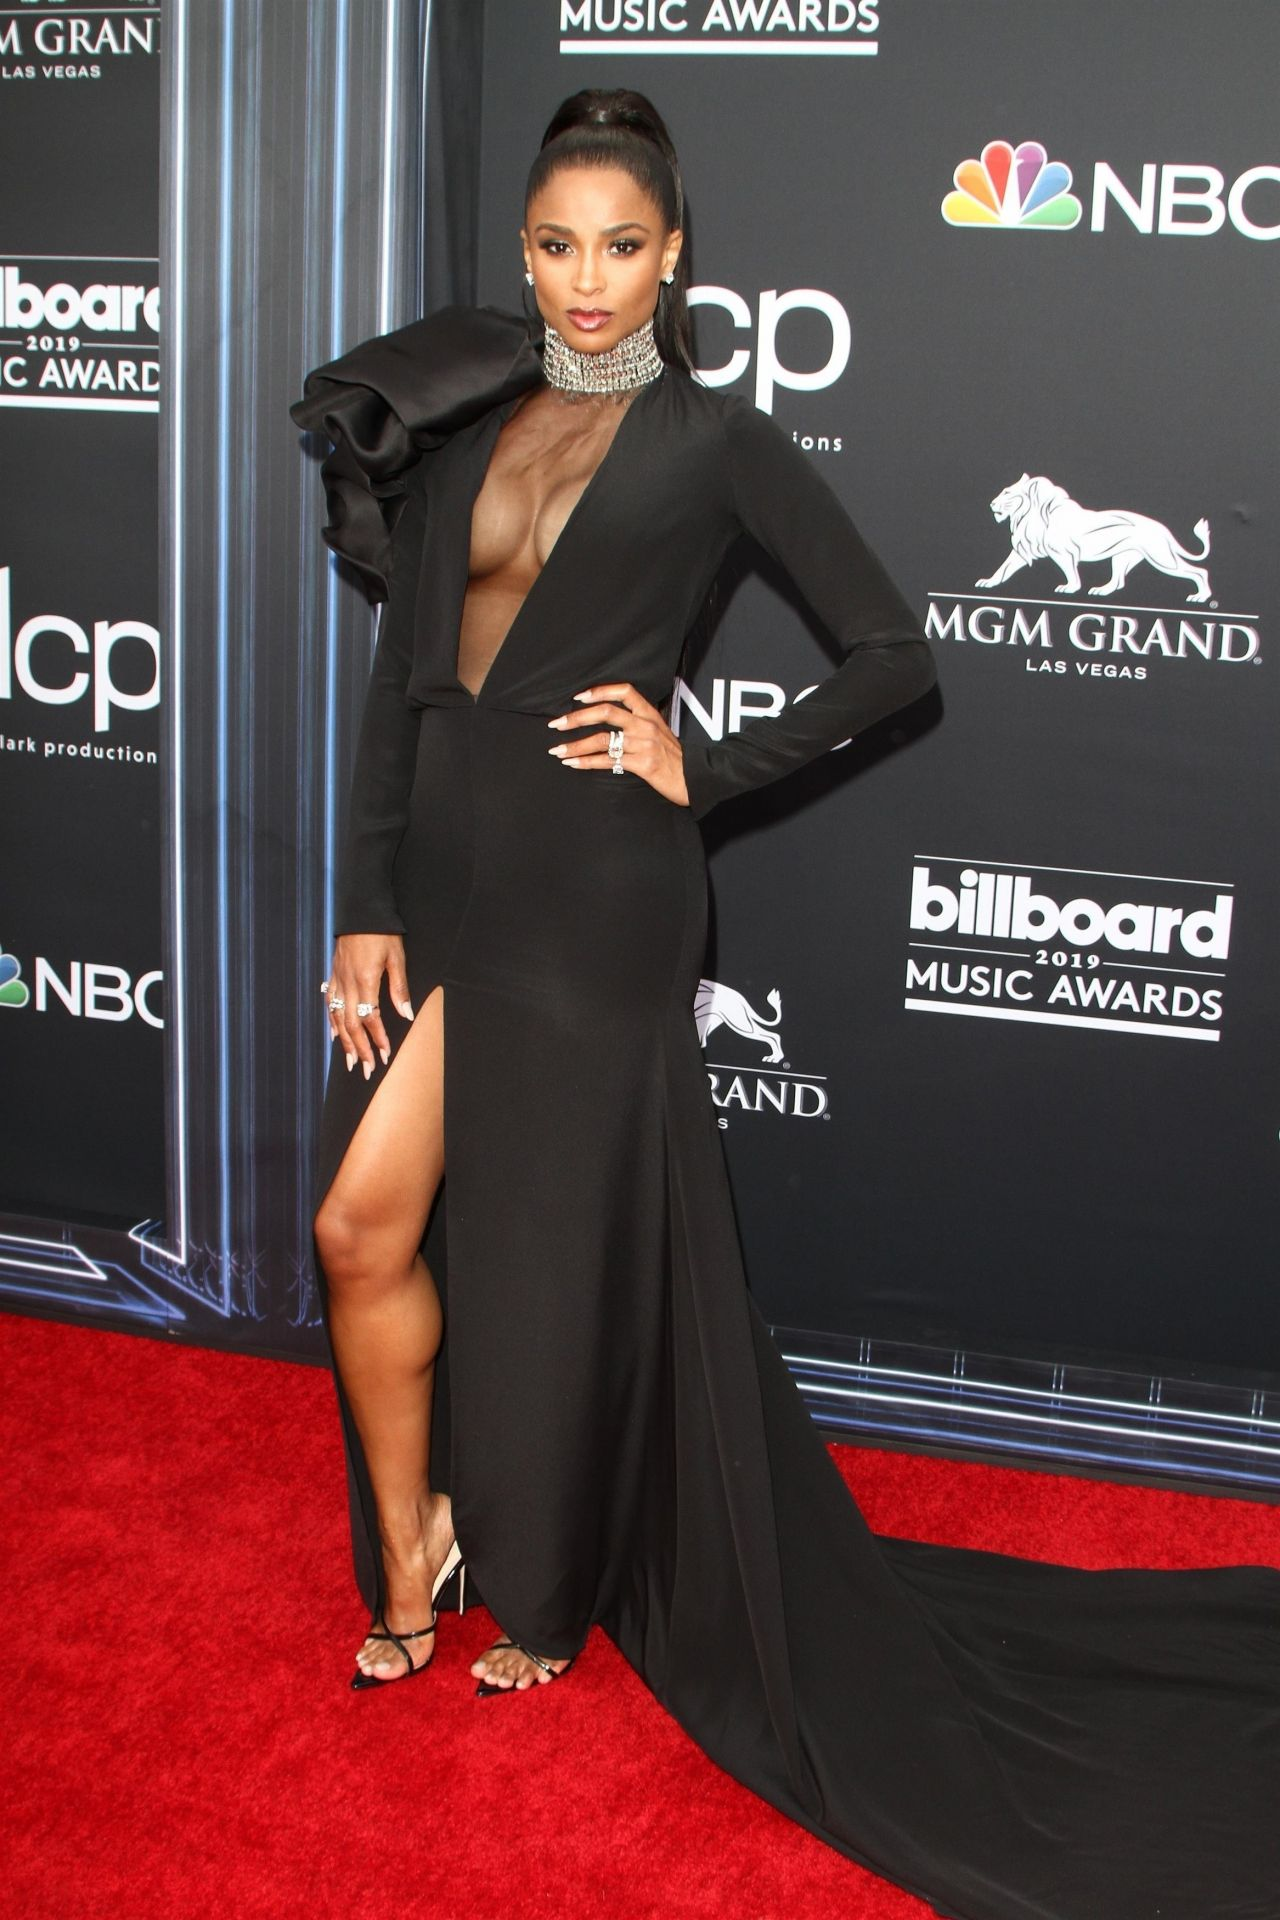 Ciara In Instyle Magazine April 2019 Issue: 2019 Billboard Music Awards